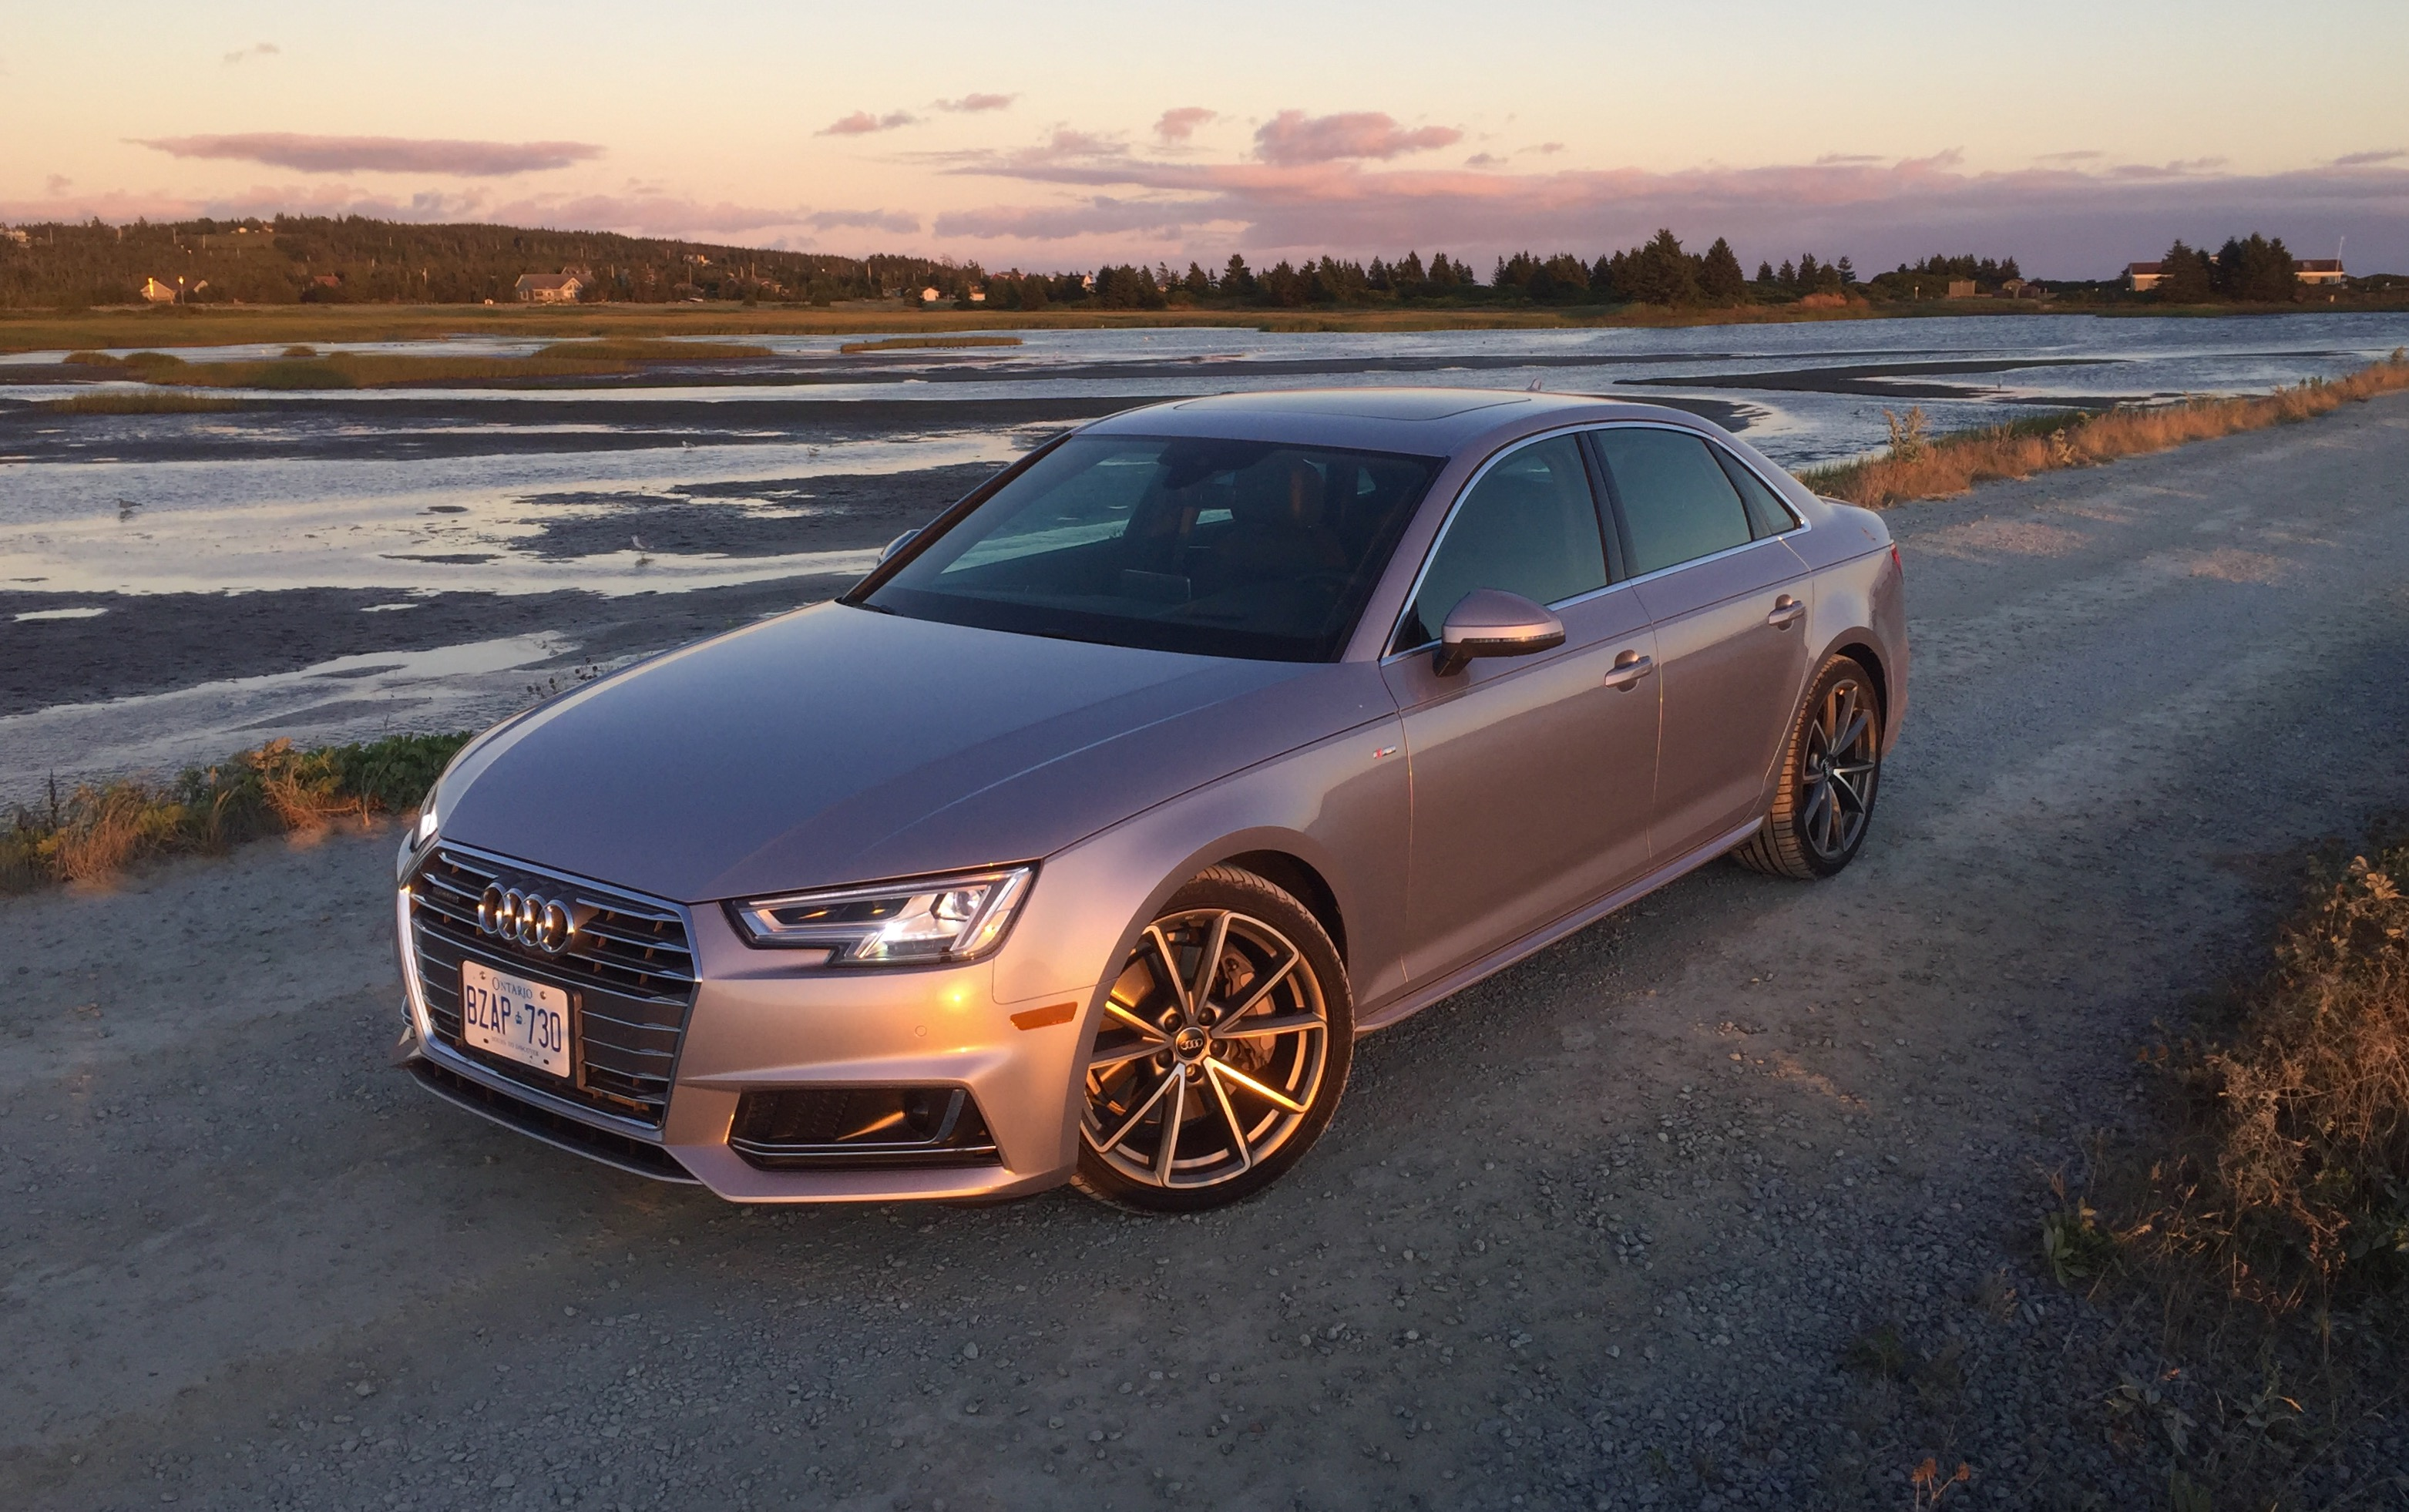 2017 Audi A4 2 0T Quattro Review Nothing To Do But Pick Nits The